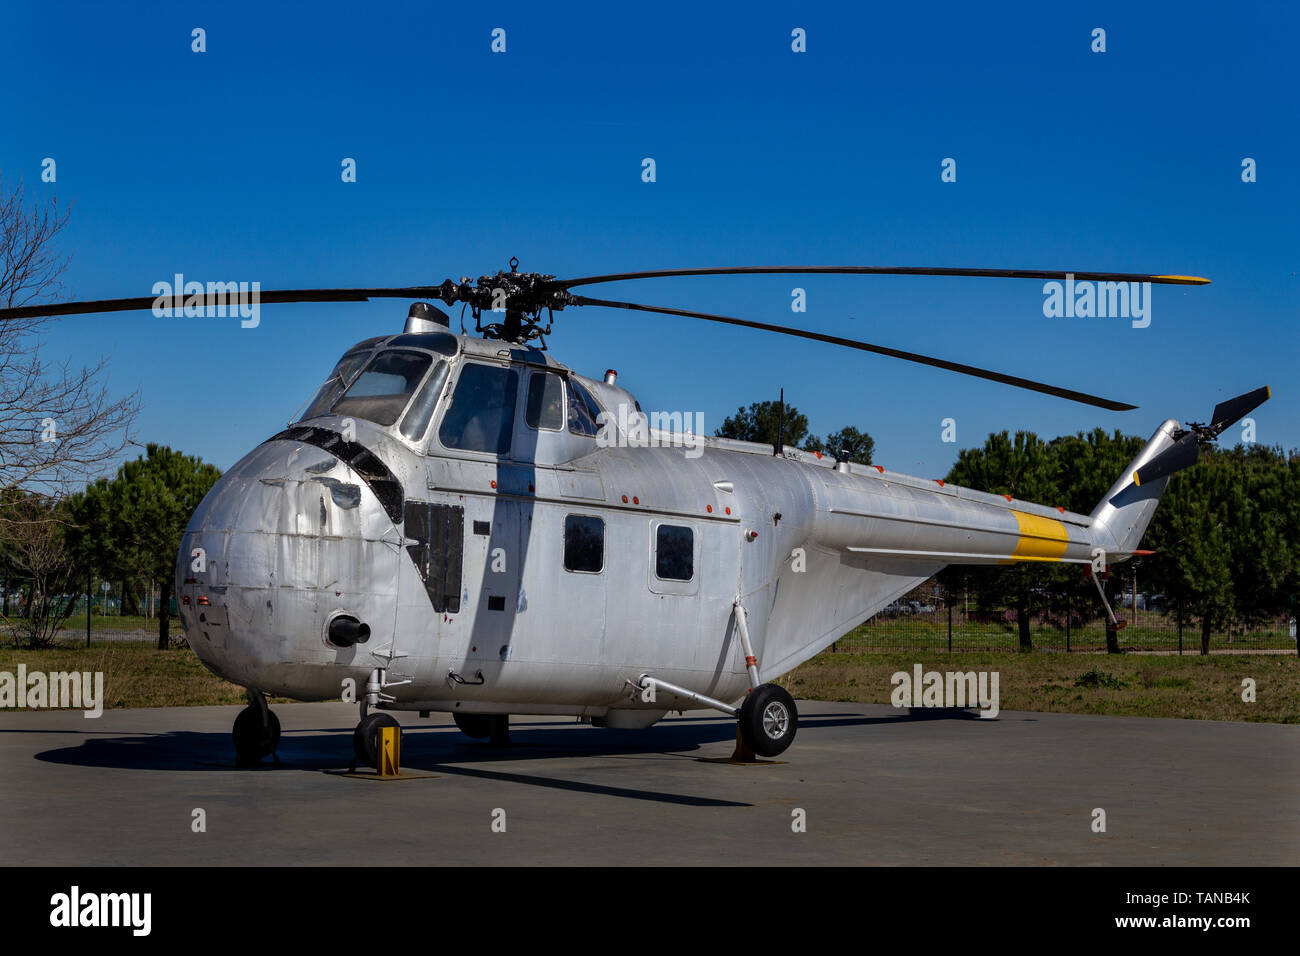 Old military helicopter - Stock Image